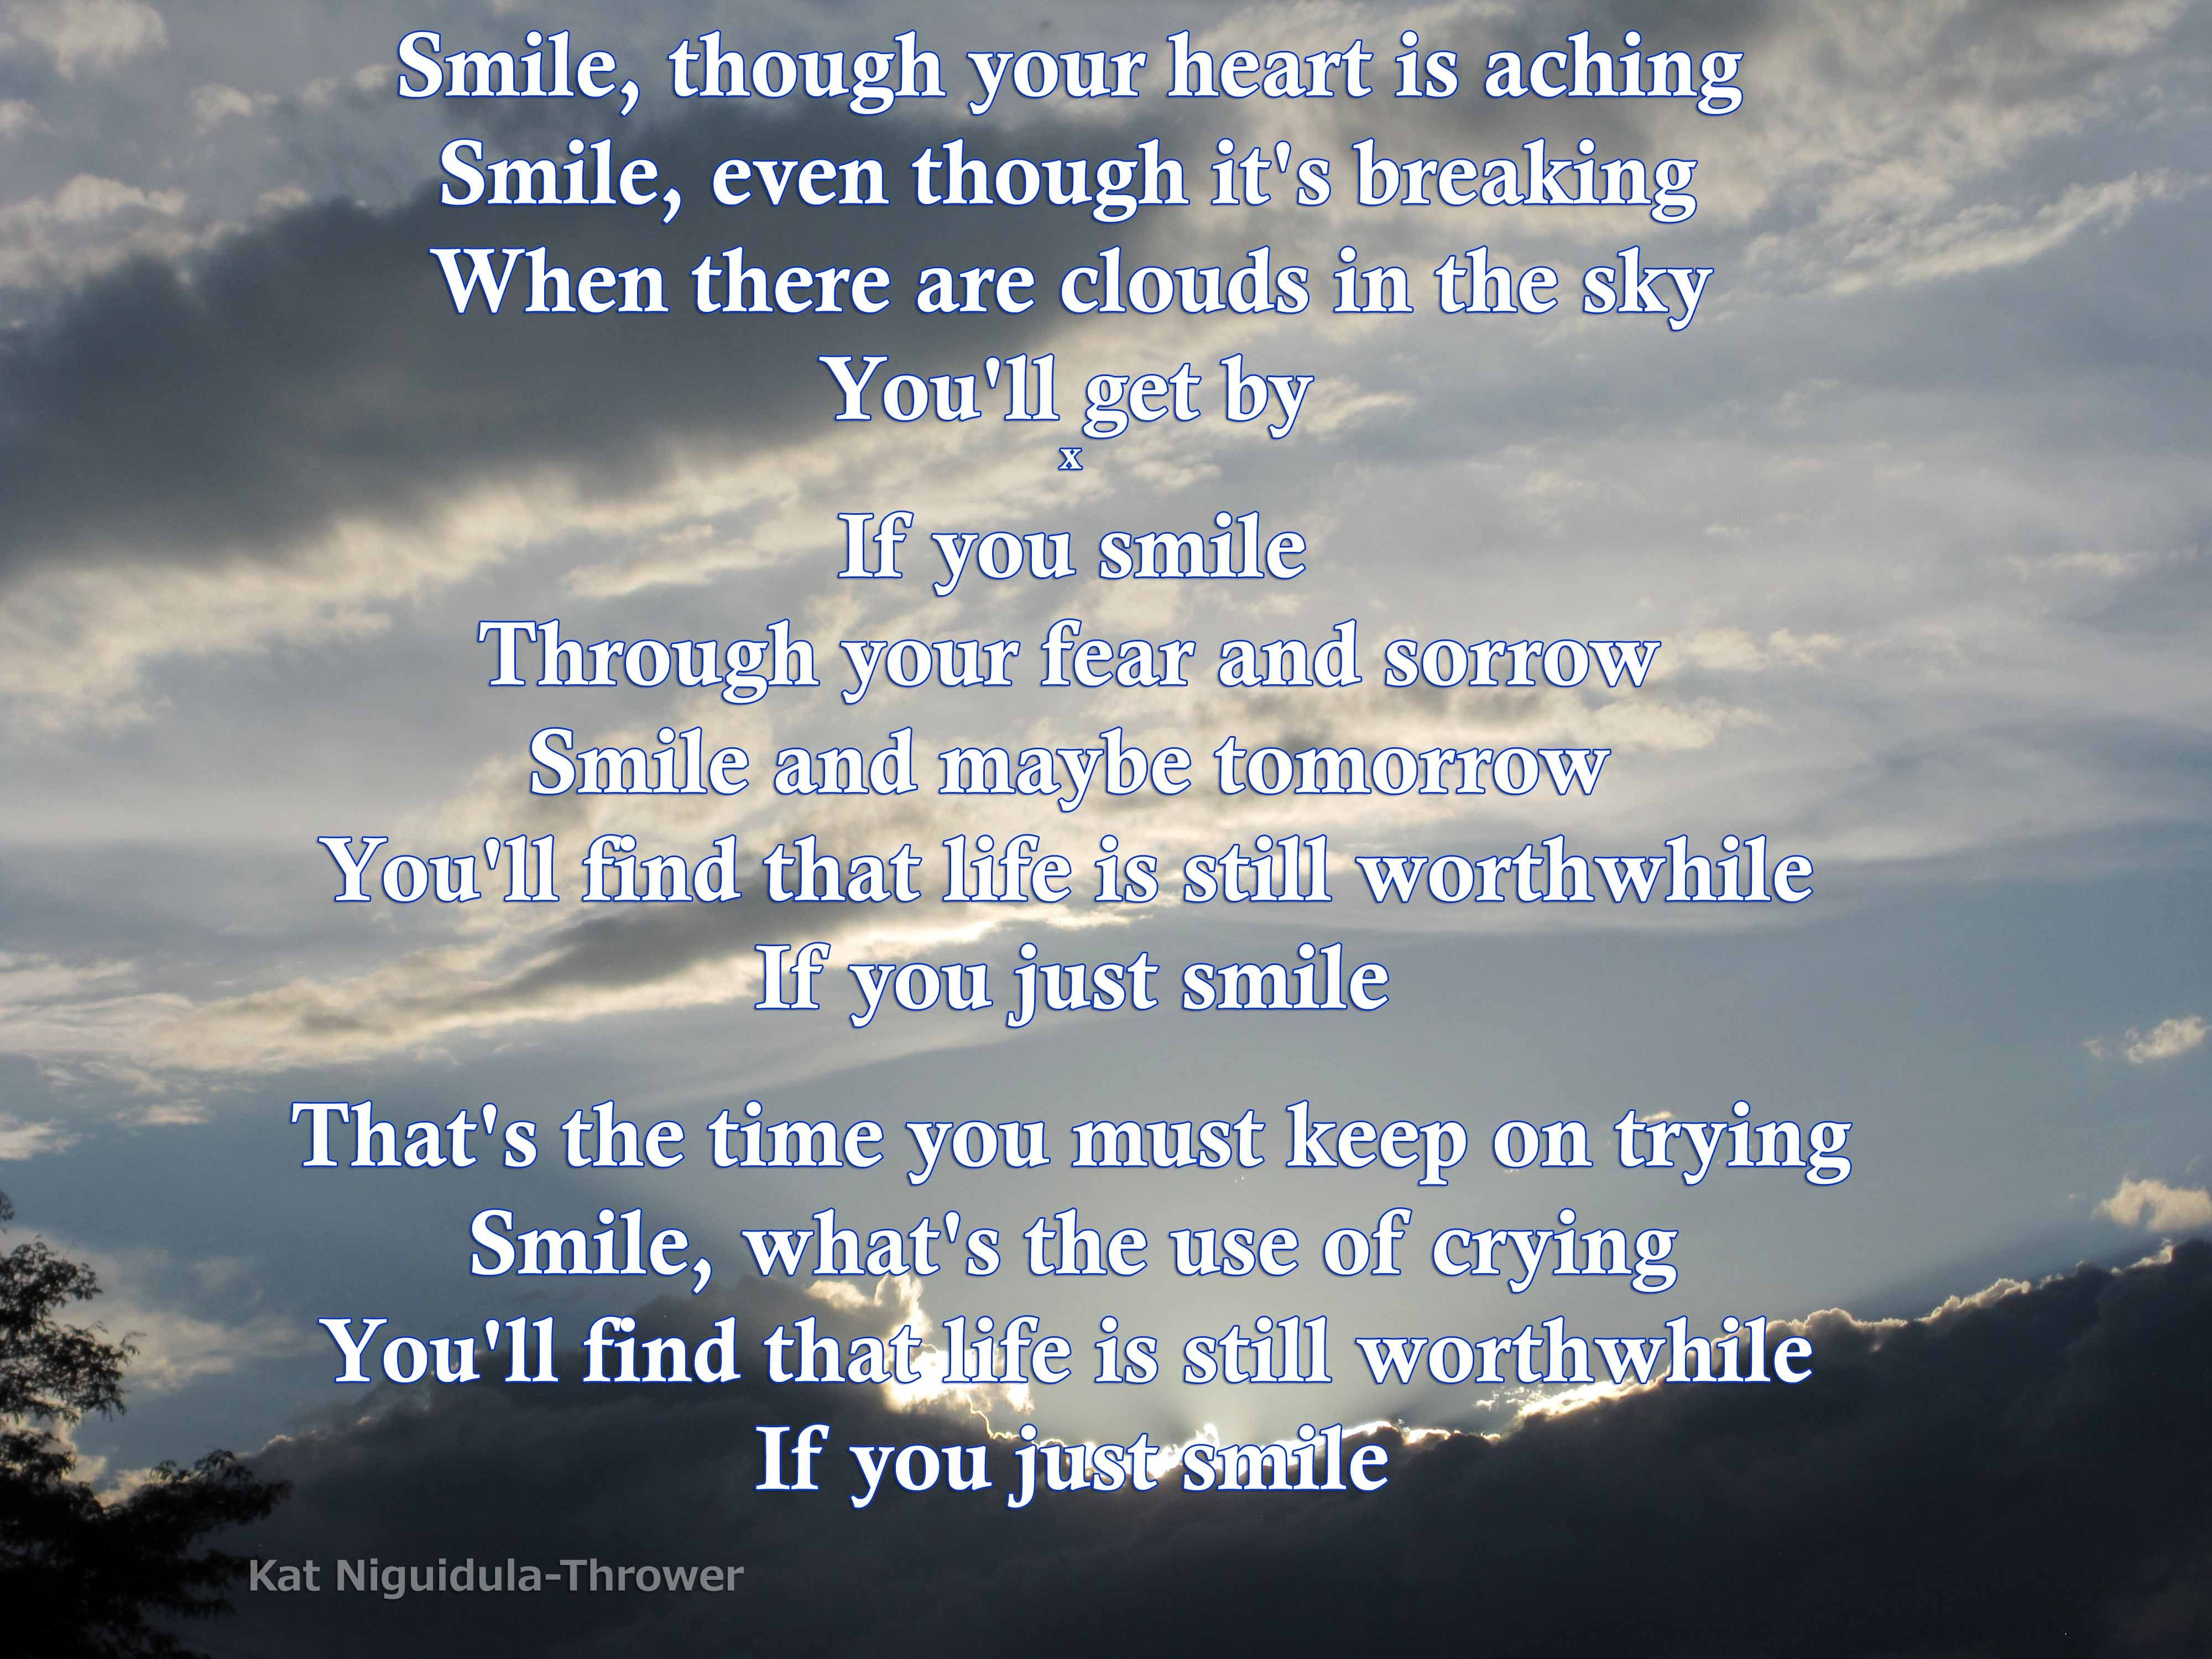 Smile Though Your Heart Is Aching Smile Even Though It S Breaking When There Are Clouds In The Sky You Ll Get By If You Just Smile Wisdom Quotes Words